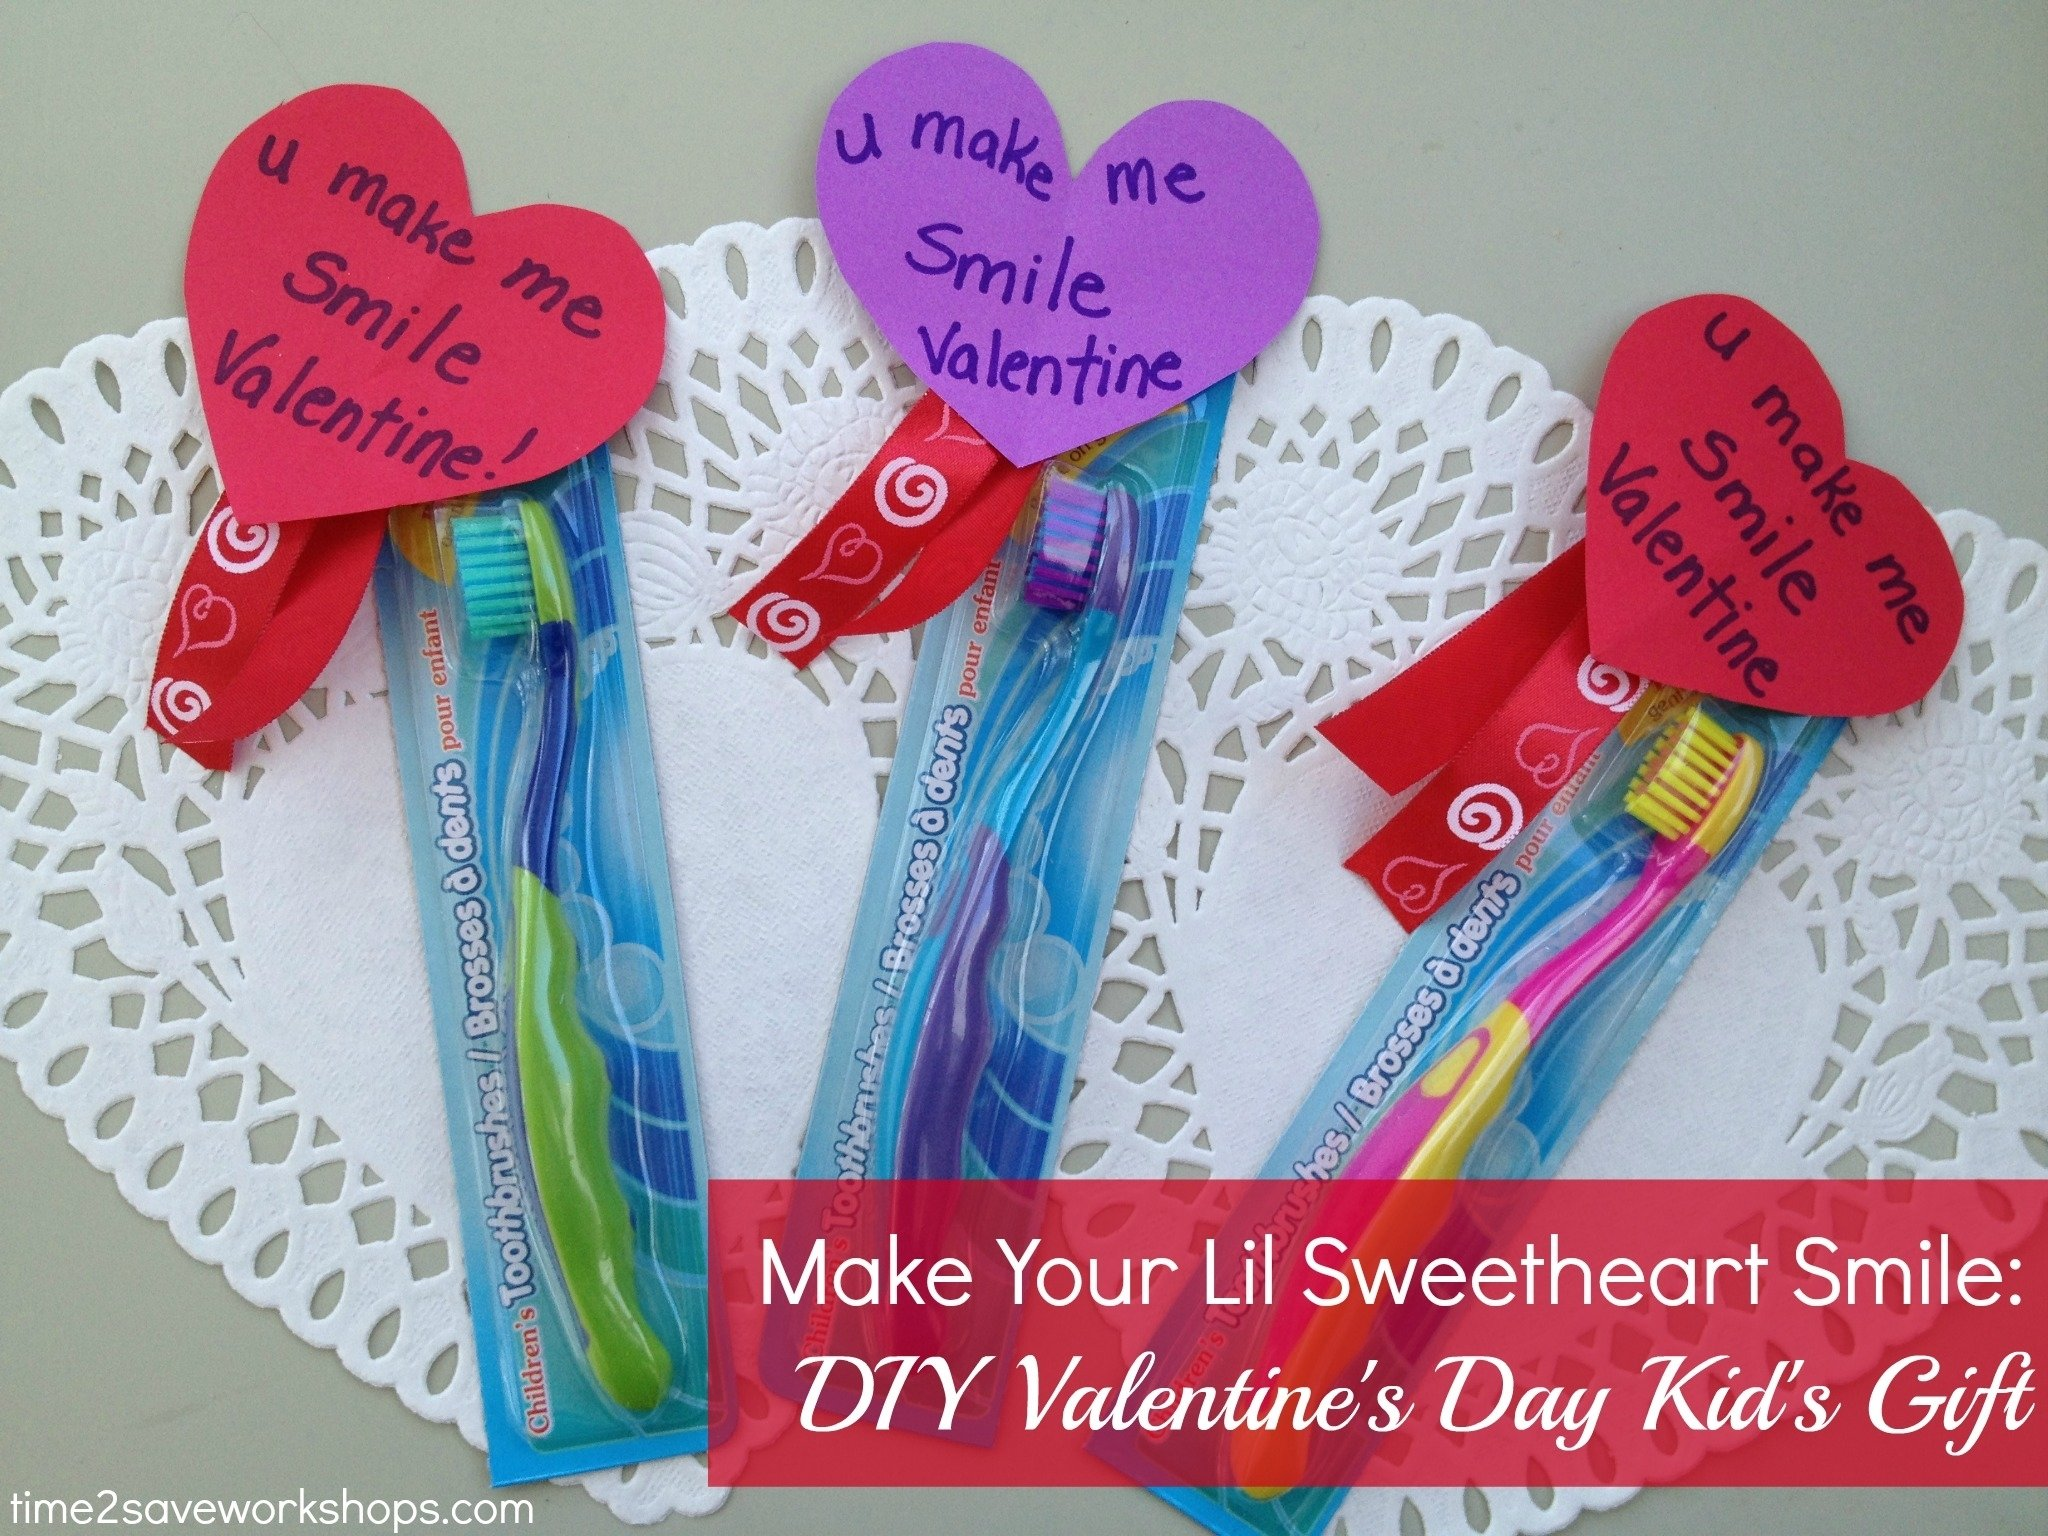 10 Attractive Cute Valentines Day Ideas For Kids valentine day gift ideas for kids startupcorner co 2021